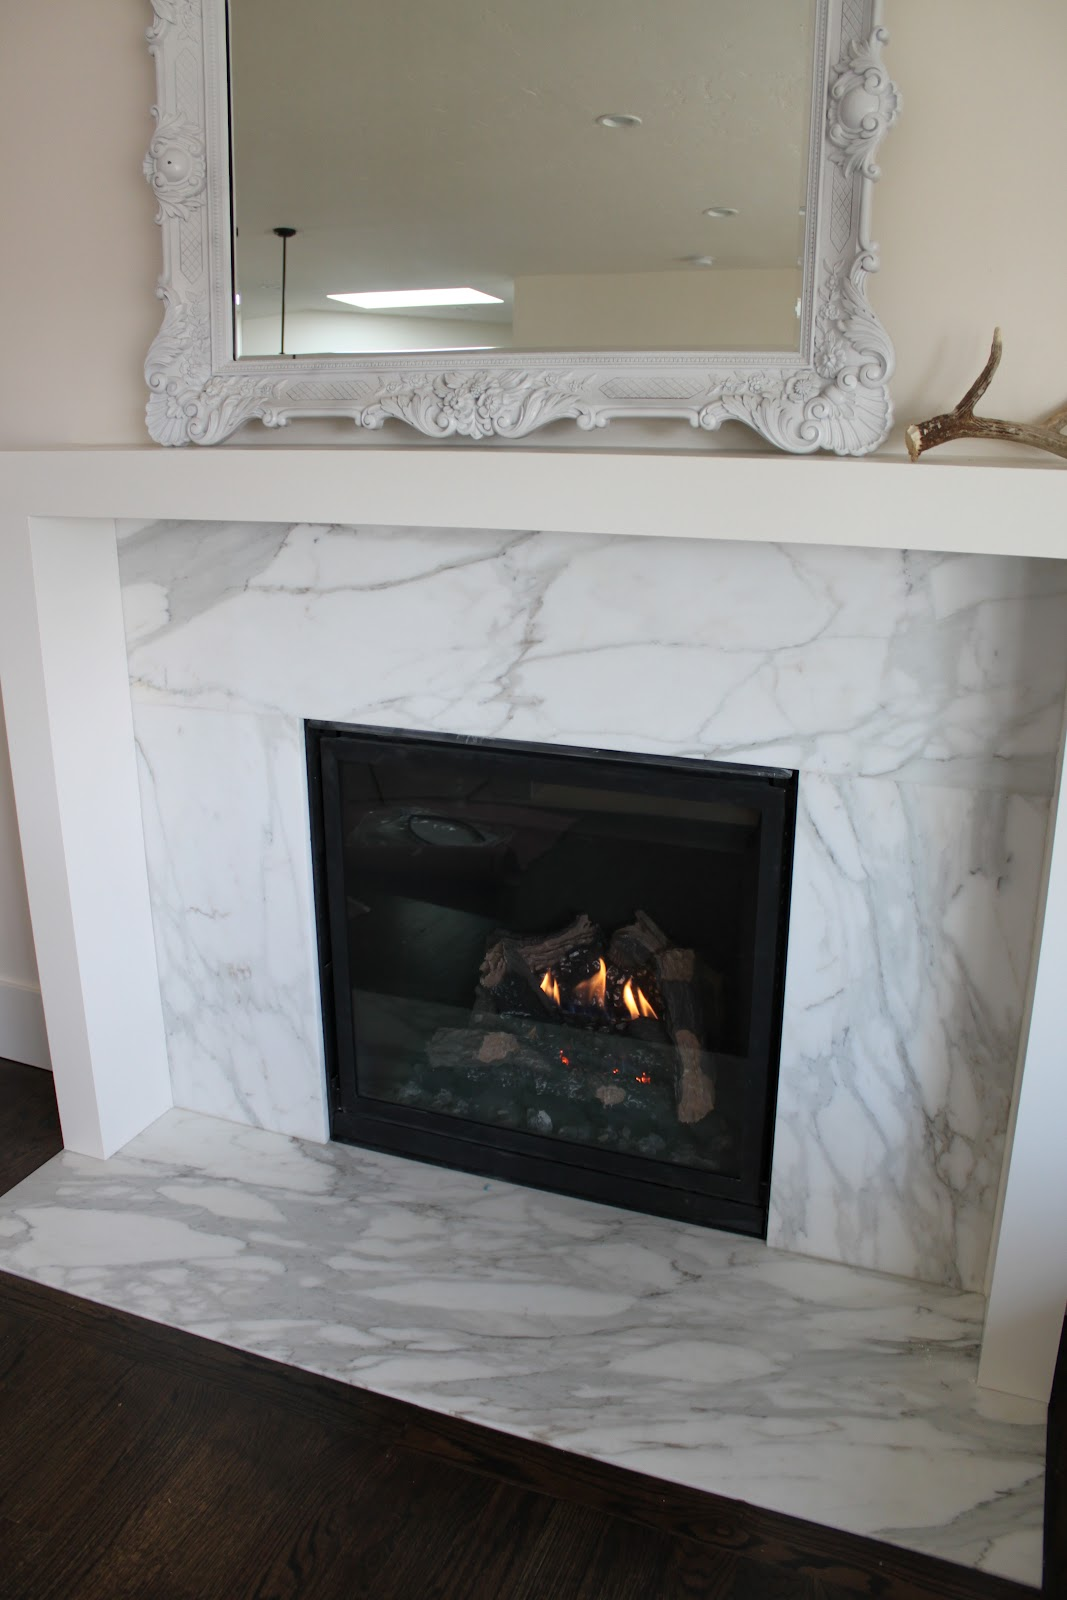 Evolution of a fireplace.